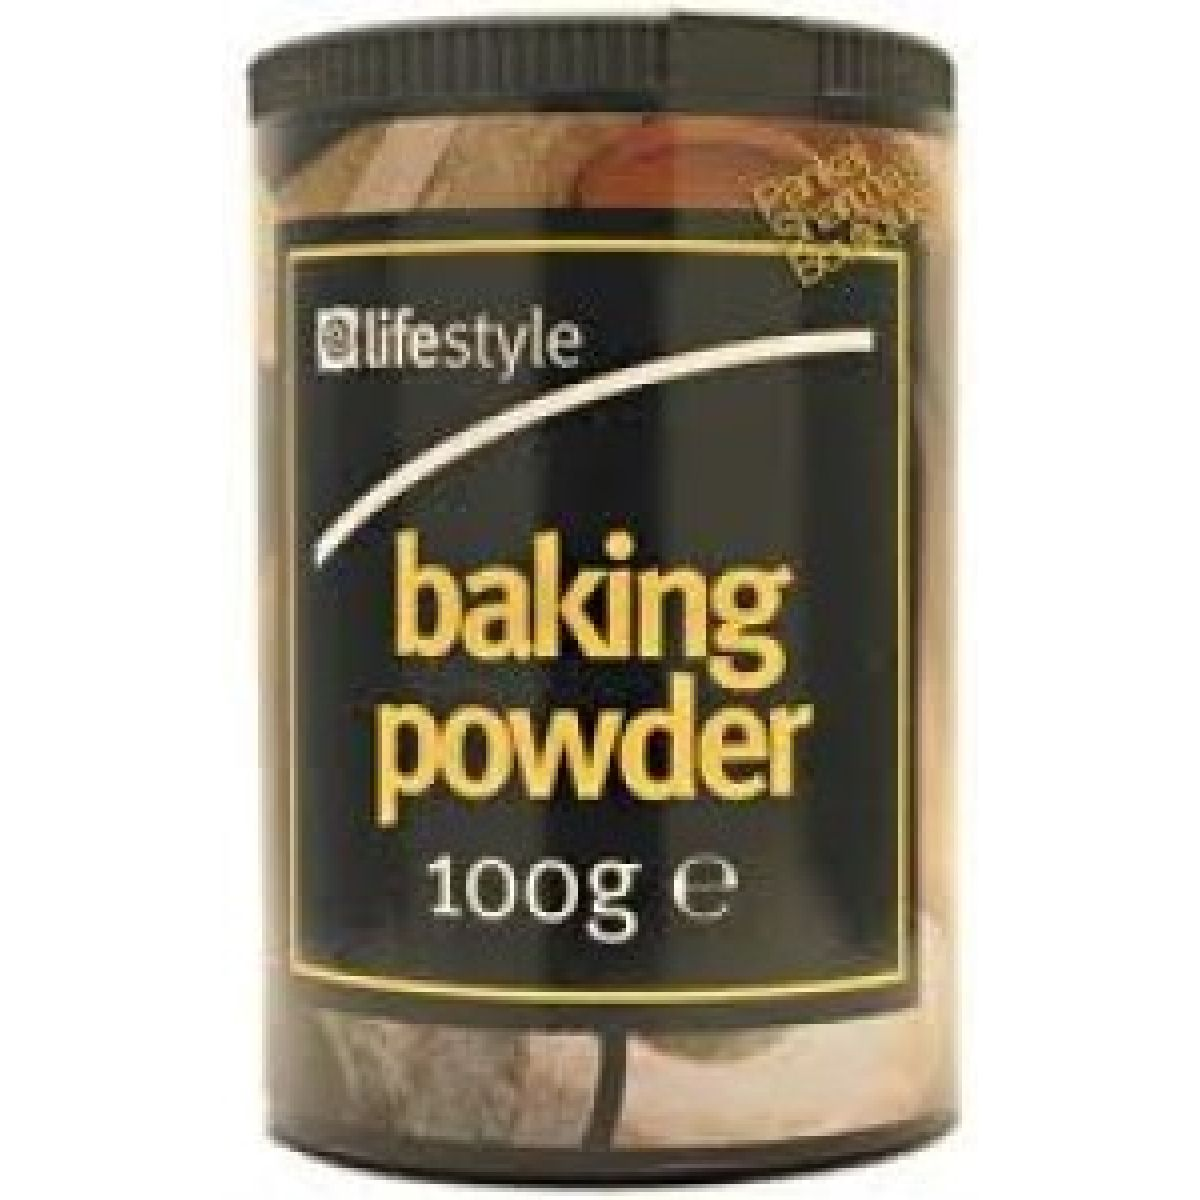 Lifestyle Baking Powder (Backpulver) 100g